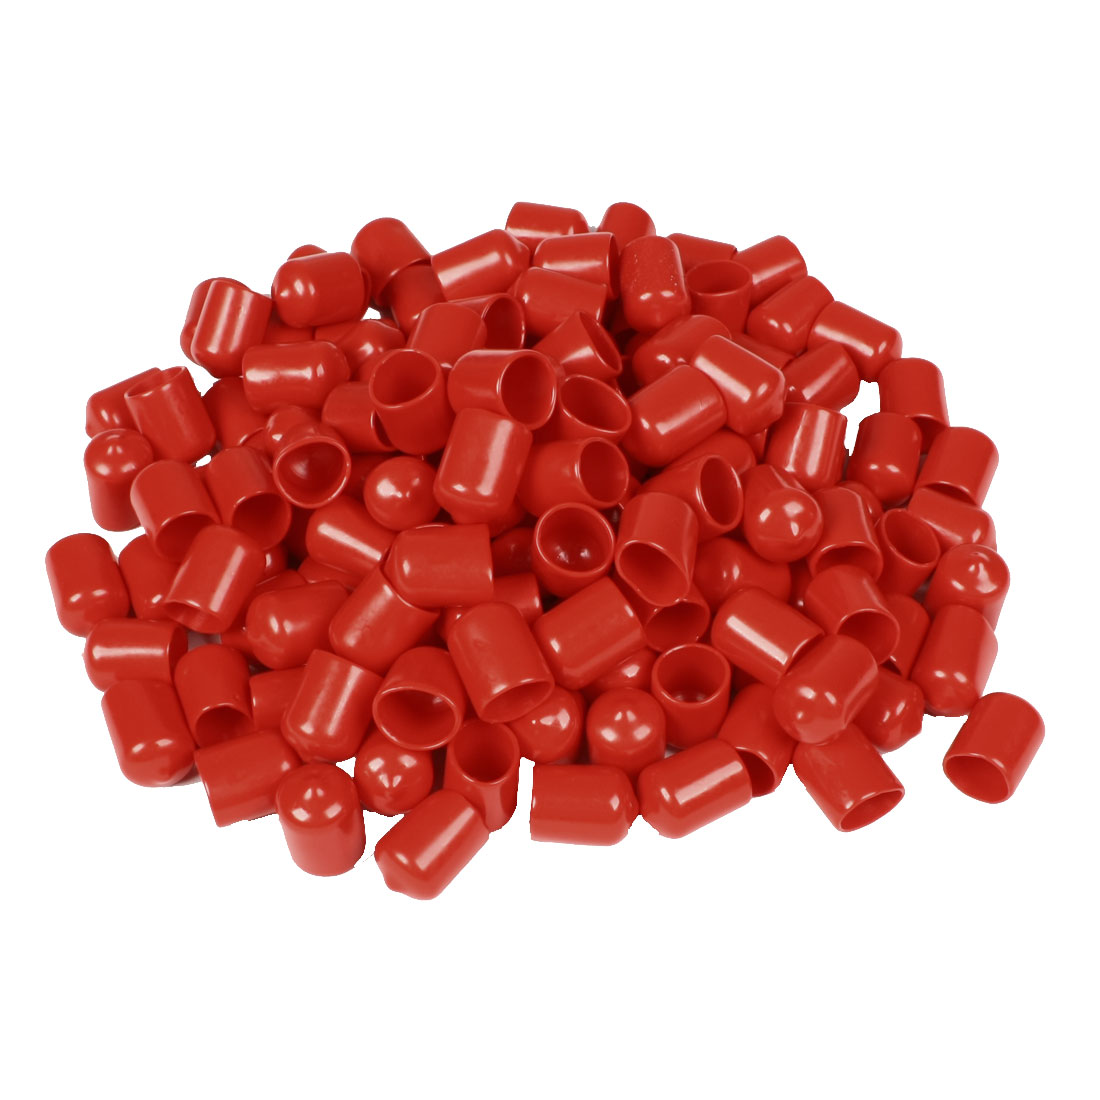 210 Pcs 25mm High 16mm Inner Dia Round Tip Red PVC Insulated End Caps